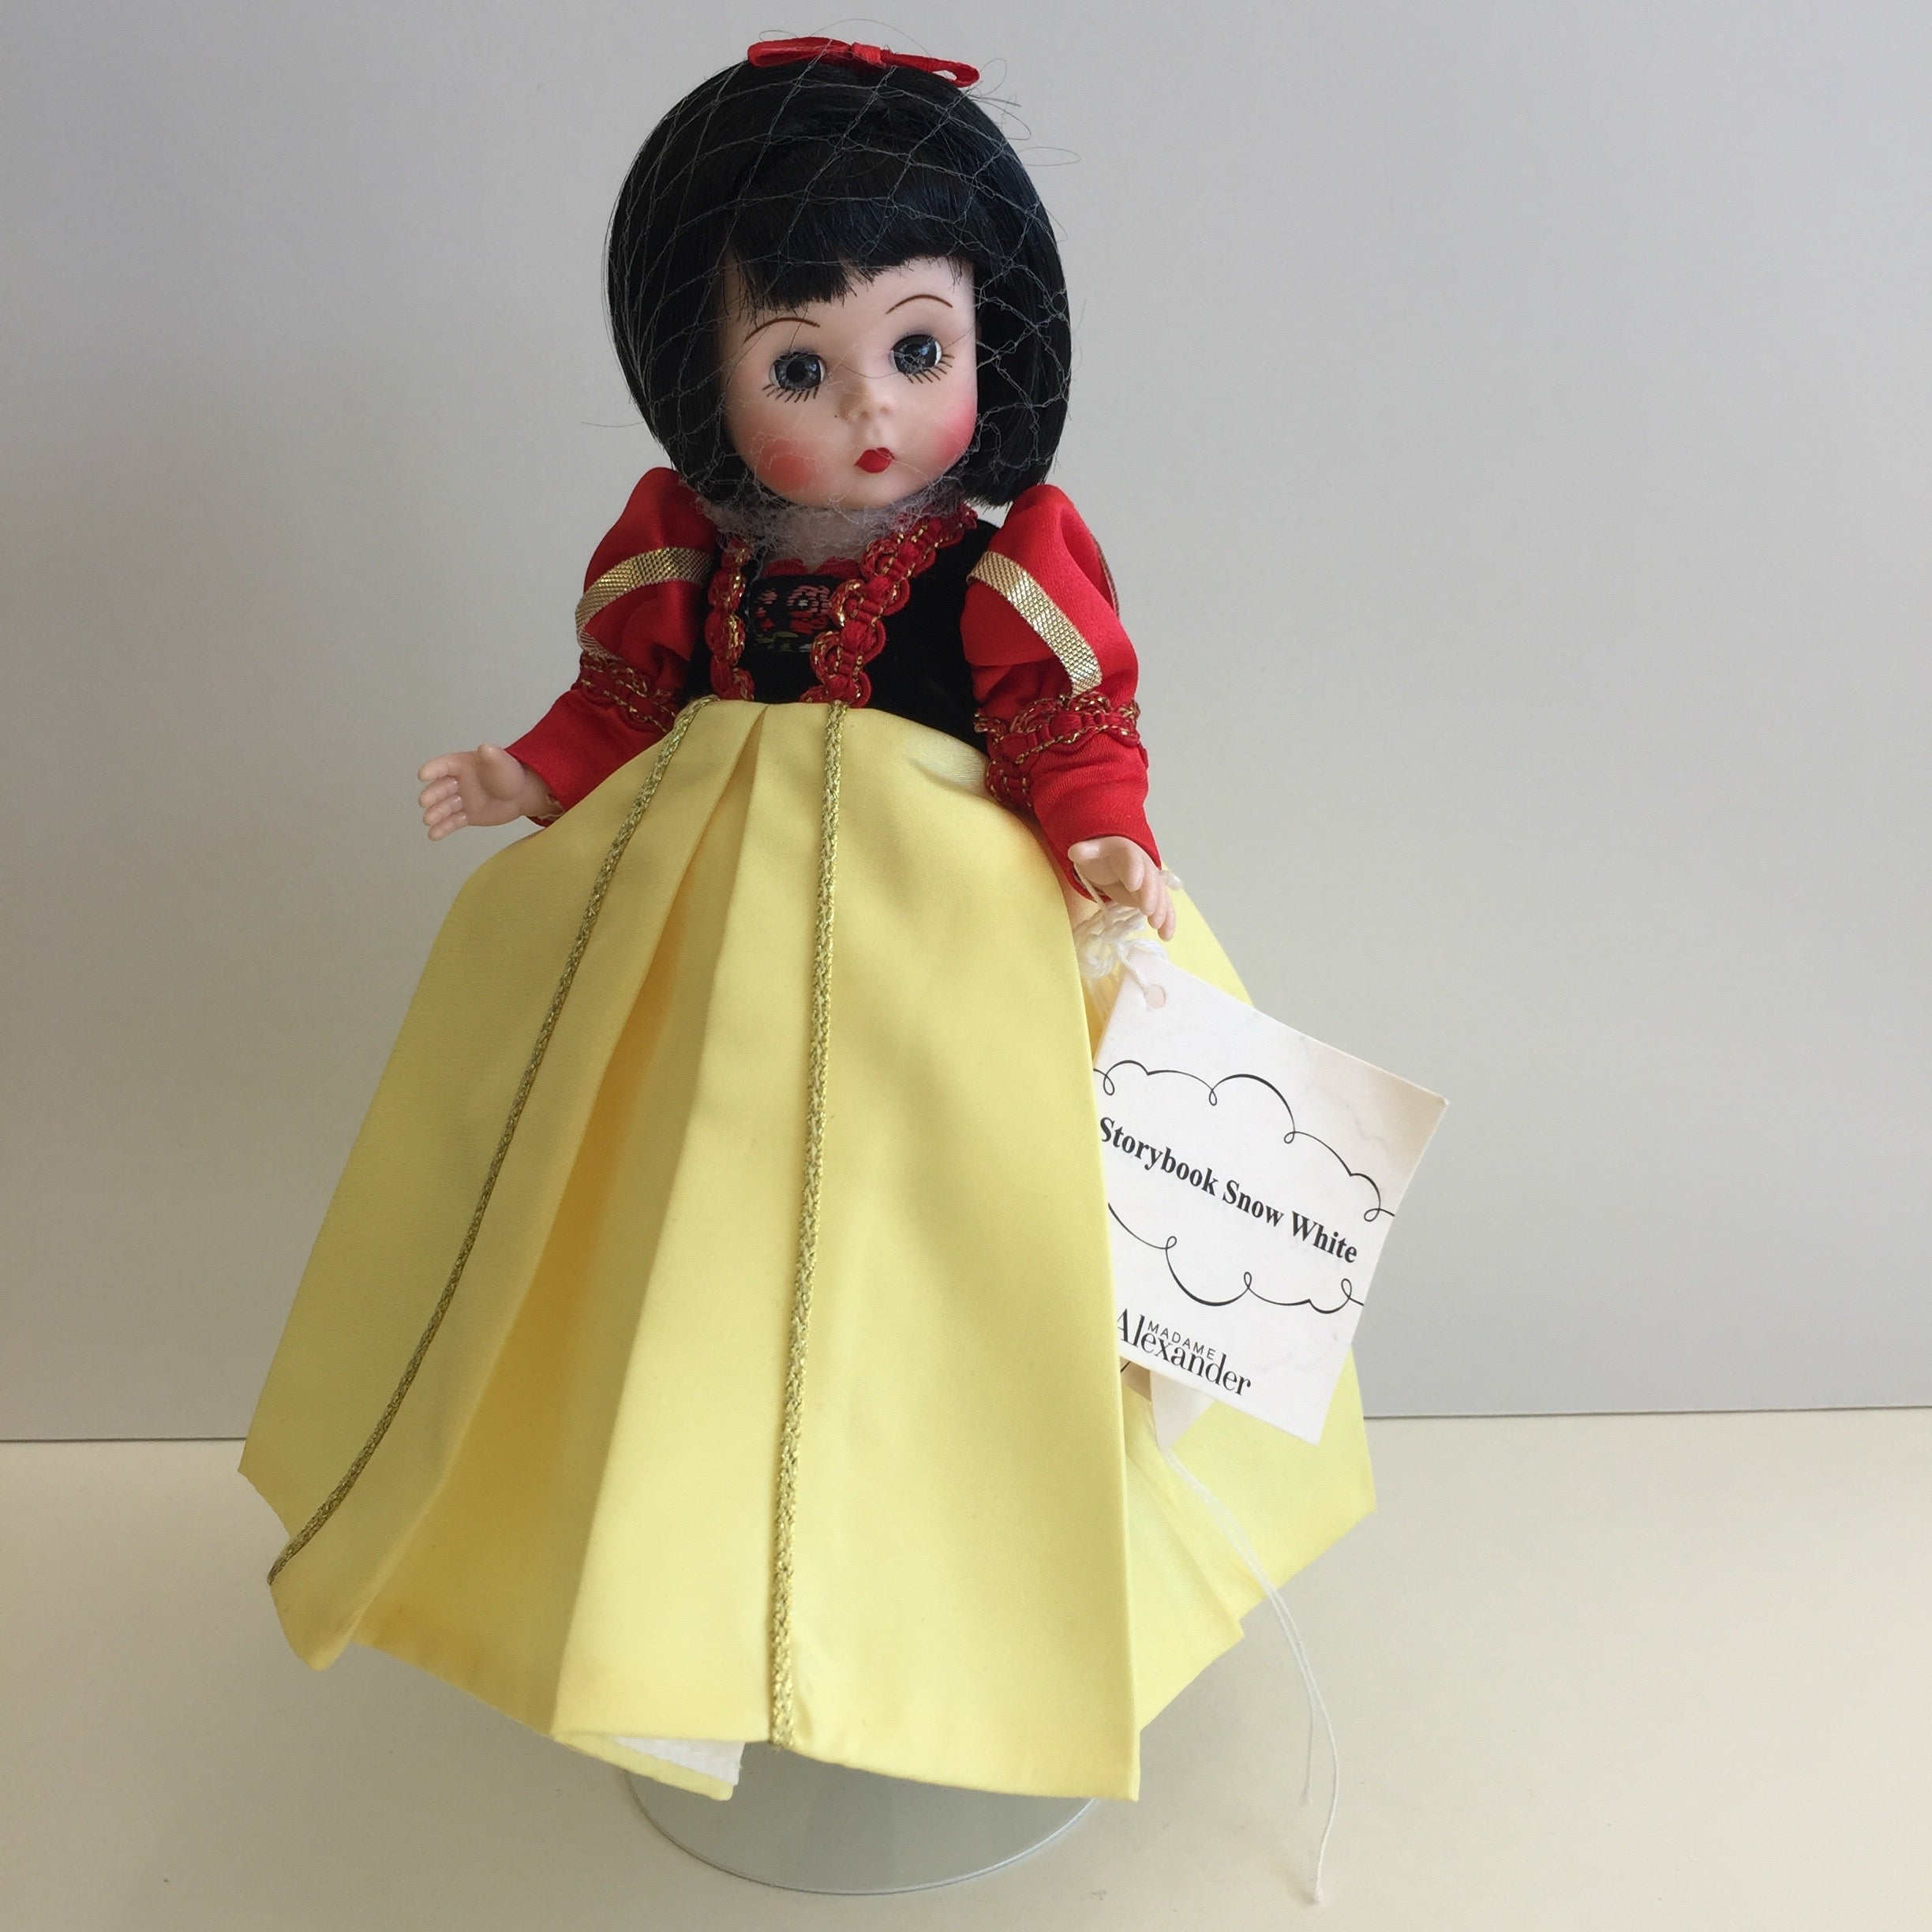 Mint Condition 2012 Madame Alexander SNOW WHITE Collectible Doll